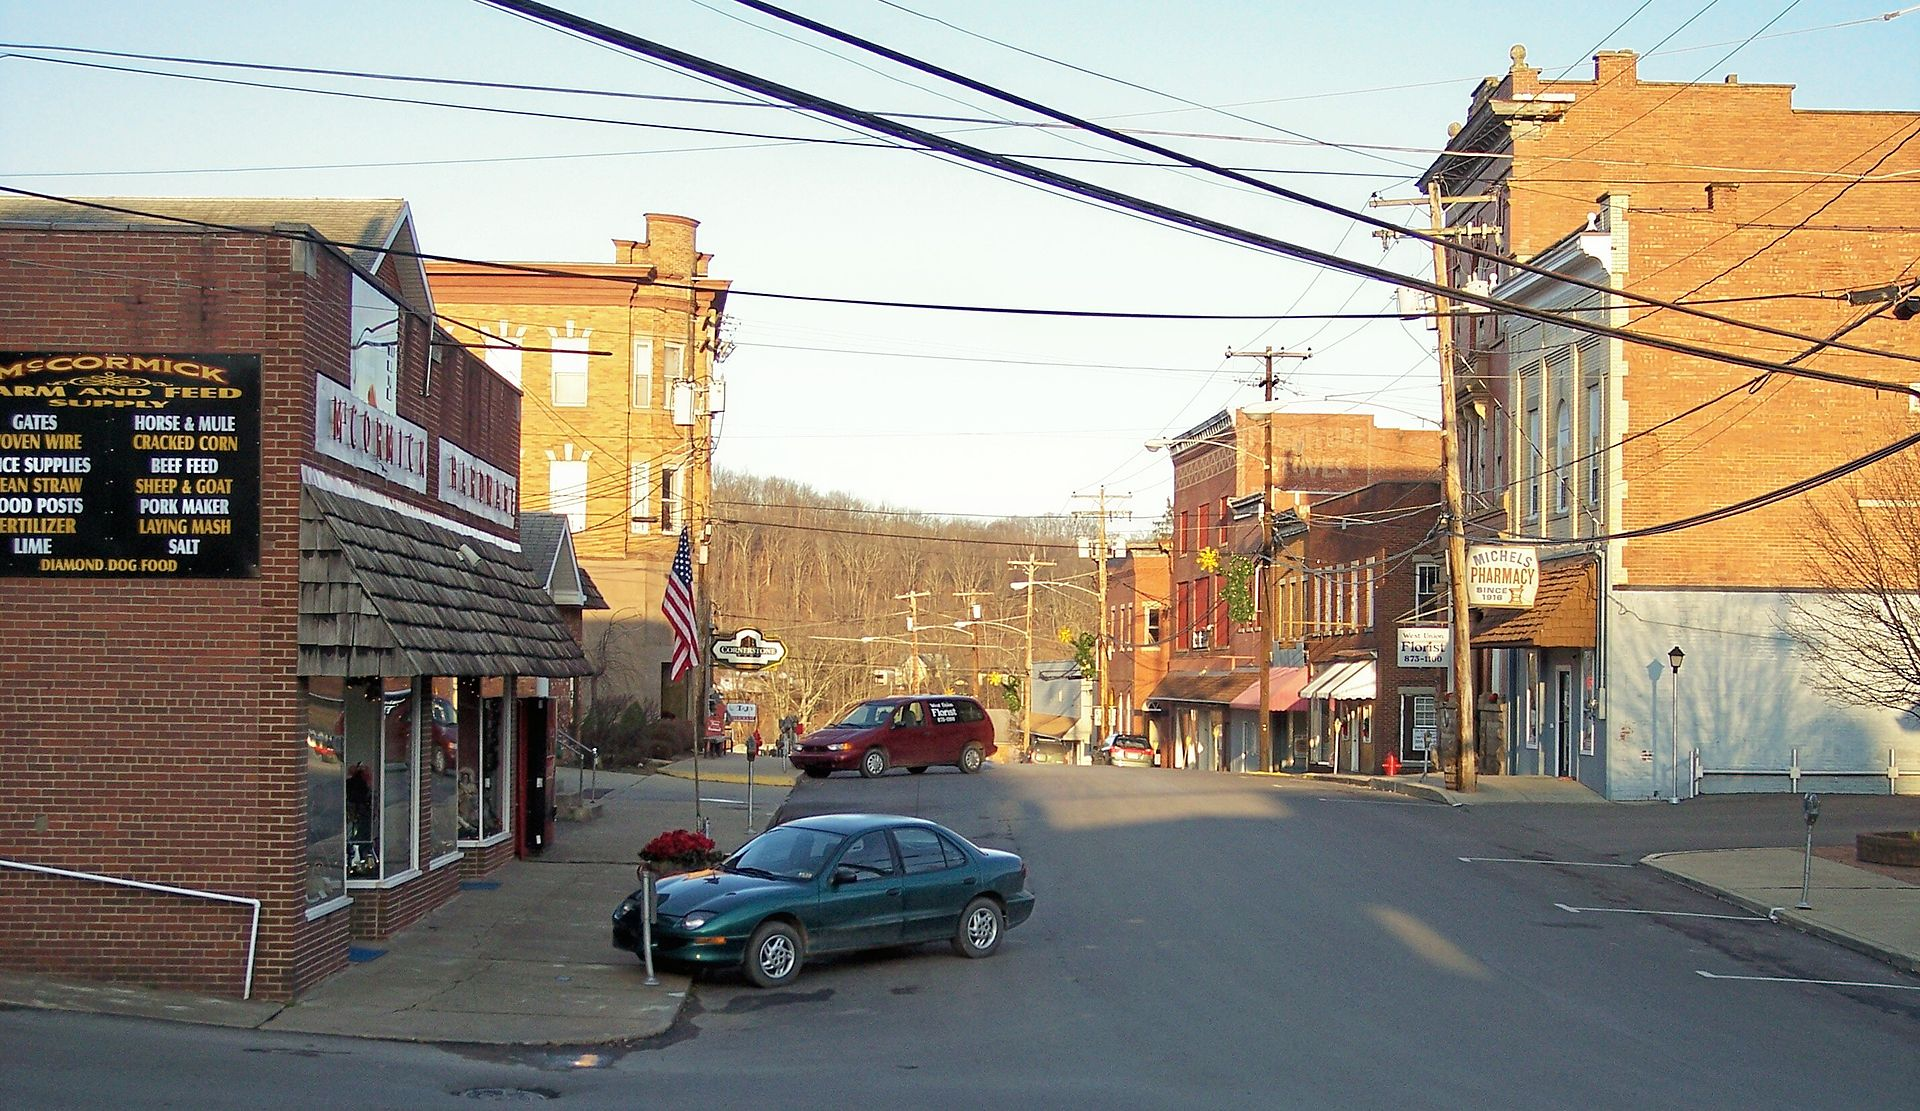 doddridge county middle eastern singles Quickfacts united states  county business patterns, nonemployer statistics, economic census, survey of business owners, building permits .